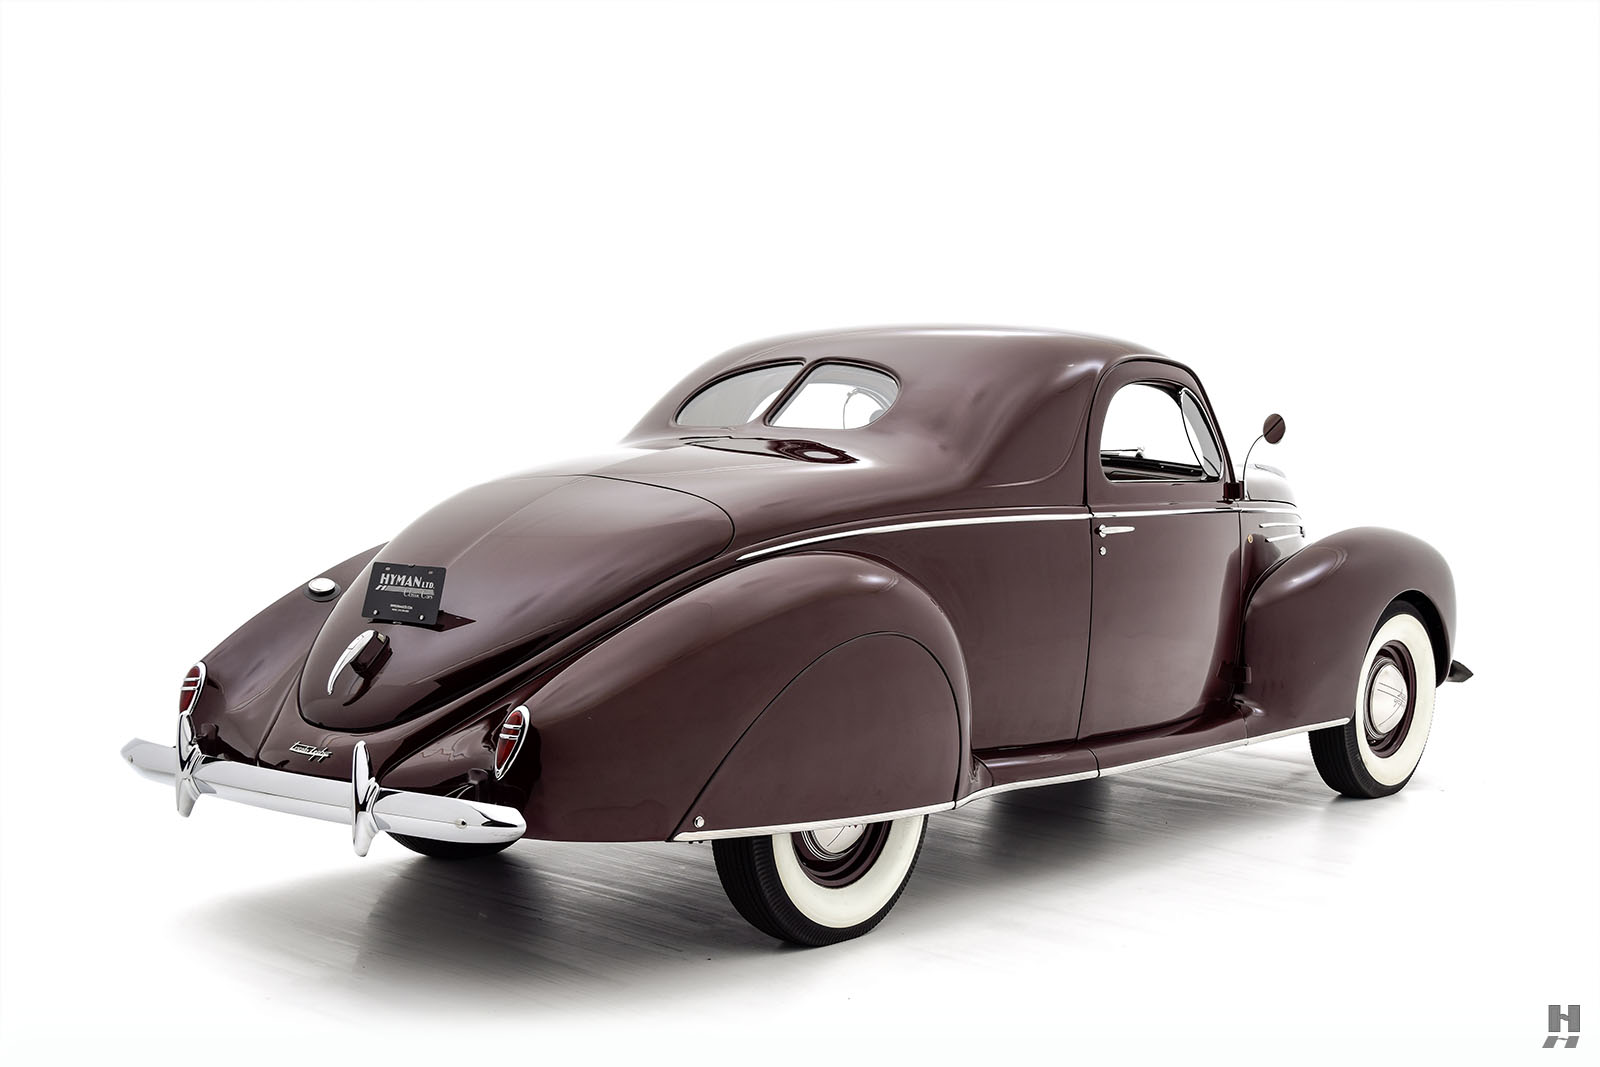 1939 lincoln zephyr coupe for sale buy classic cars hyman ltd Zephyr Car 1939 lincoln zephyr coupe for sale at hyman ltd